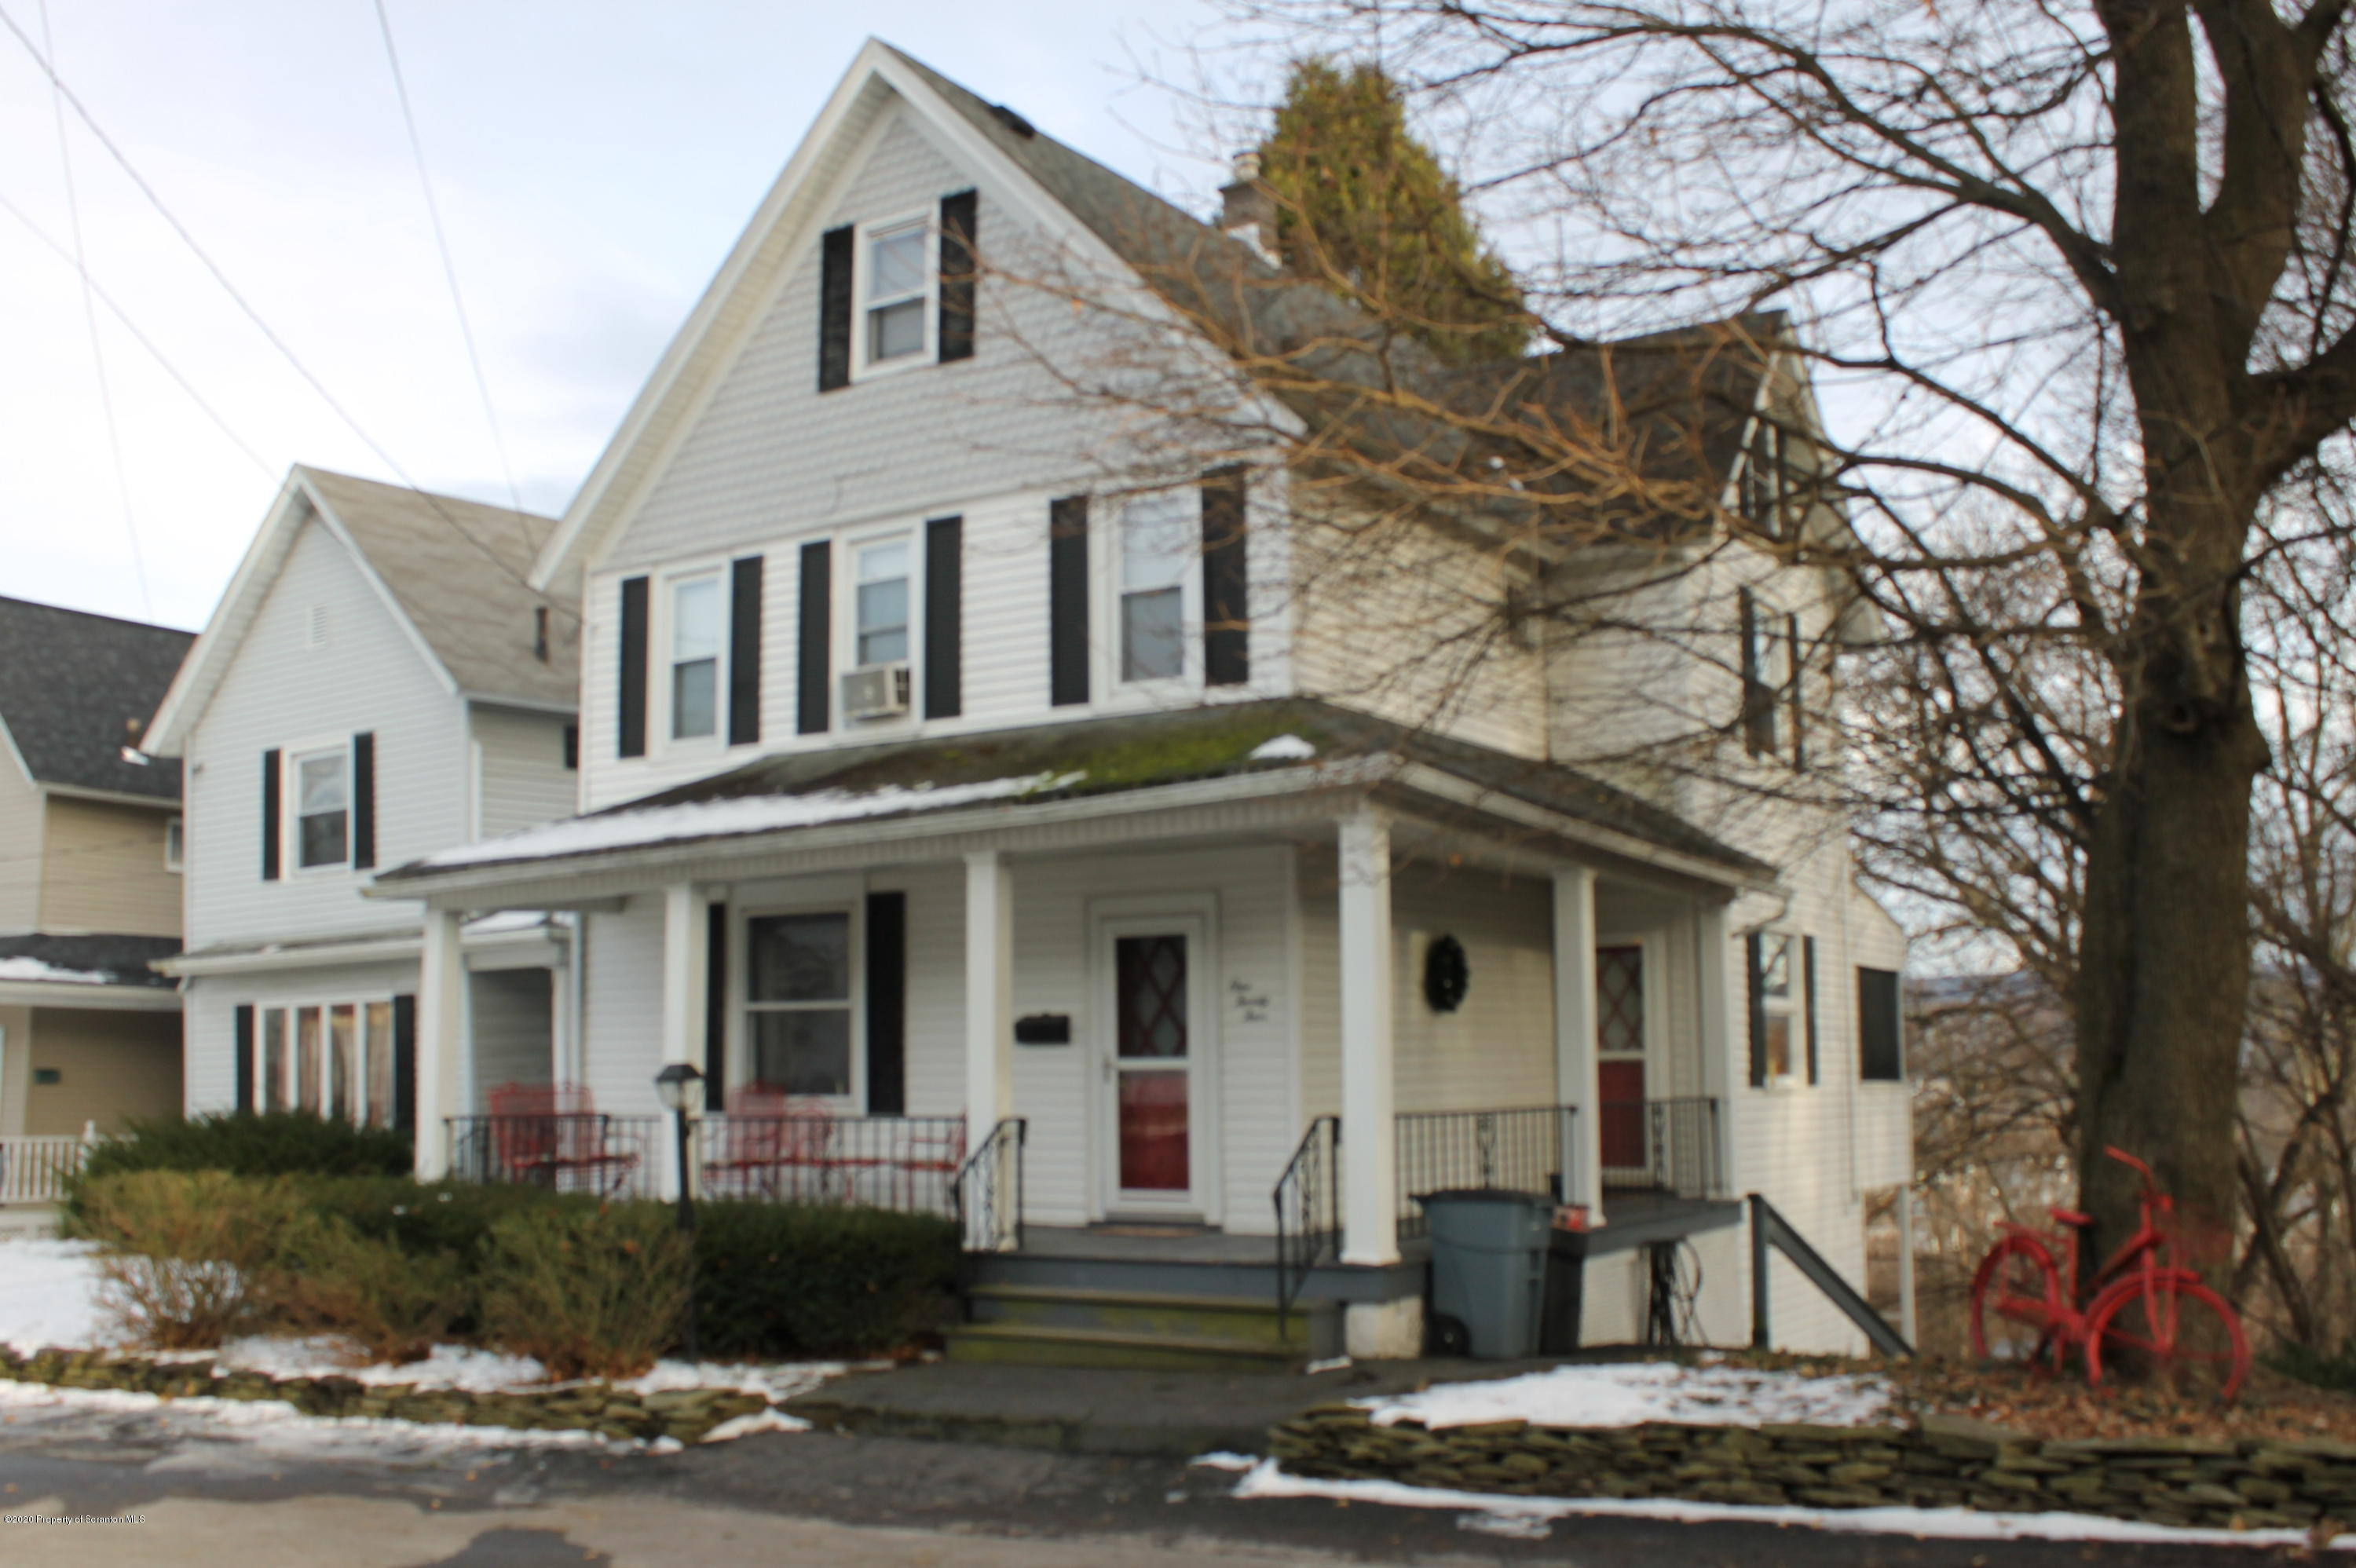 124 Hollister Ave, Scranton, Pennsylvania 18508, 3 Bedrooms Bedrooms, 7 Rooms Rooms,1 BathroomBathrooms,Single Family,For Sale,Hollister,20-346